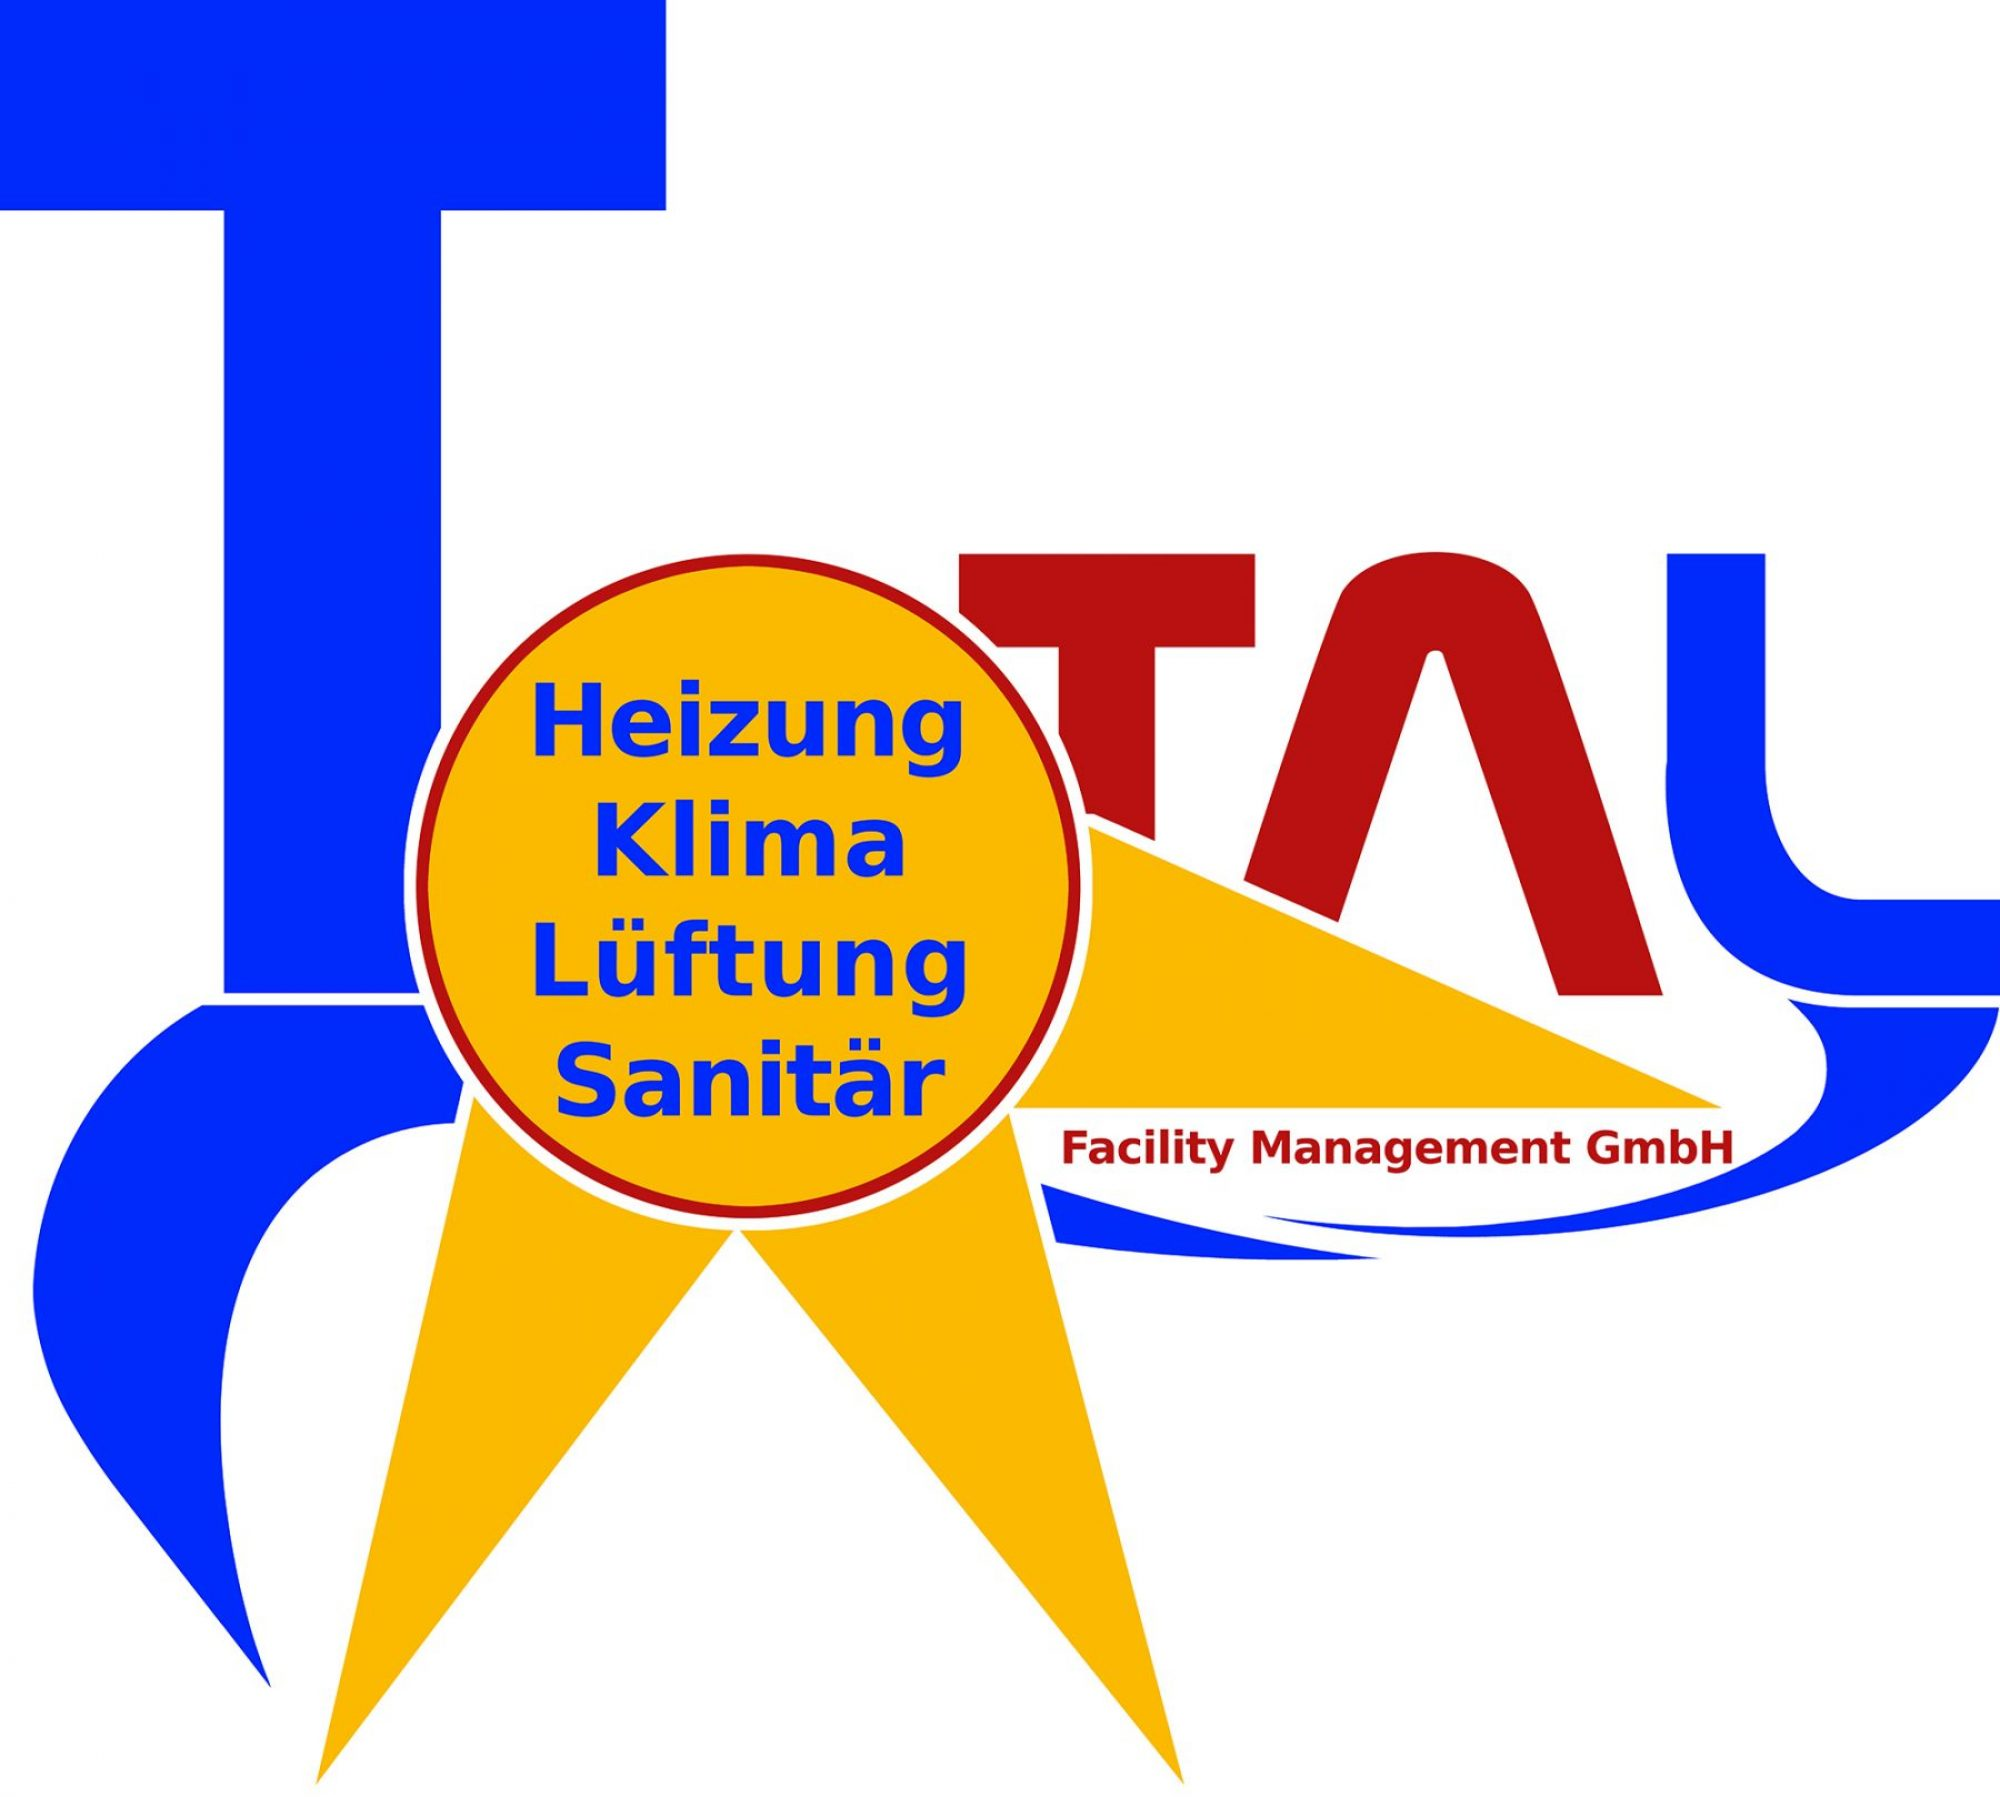 Total-Facility Management GmbH